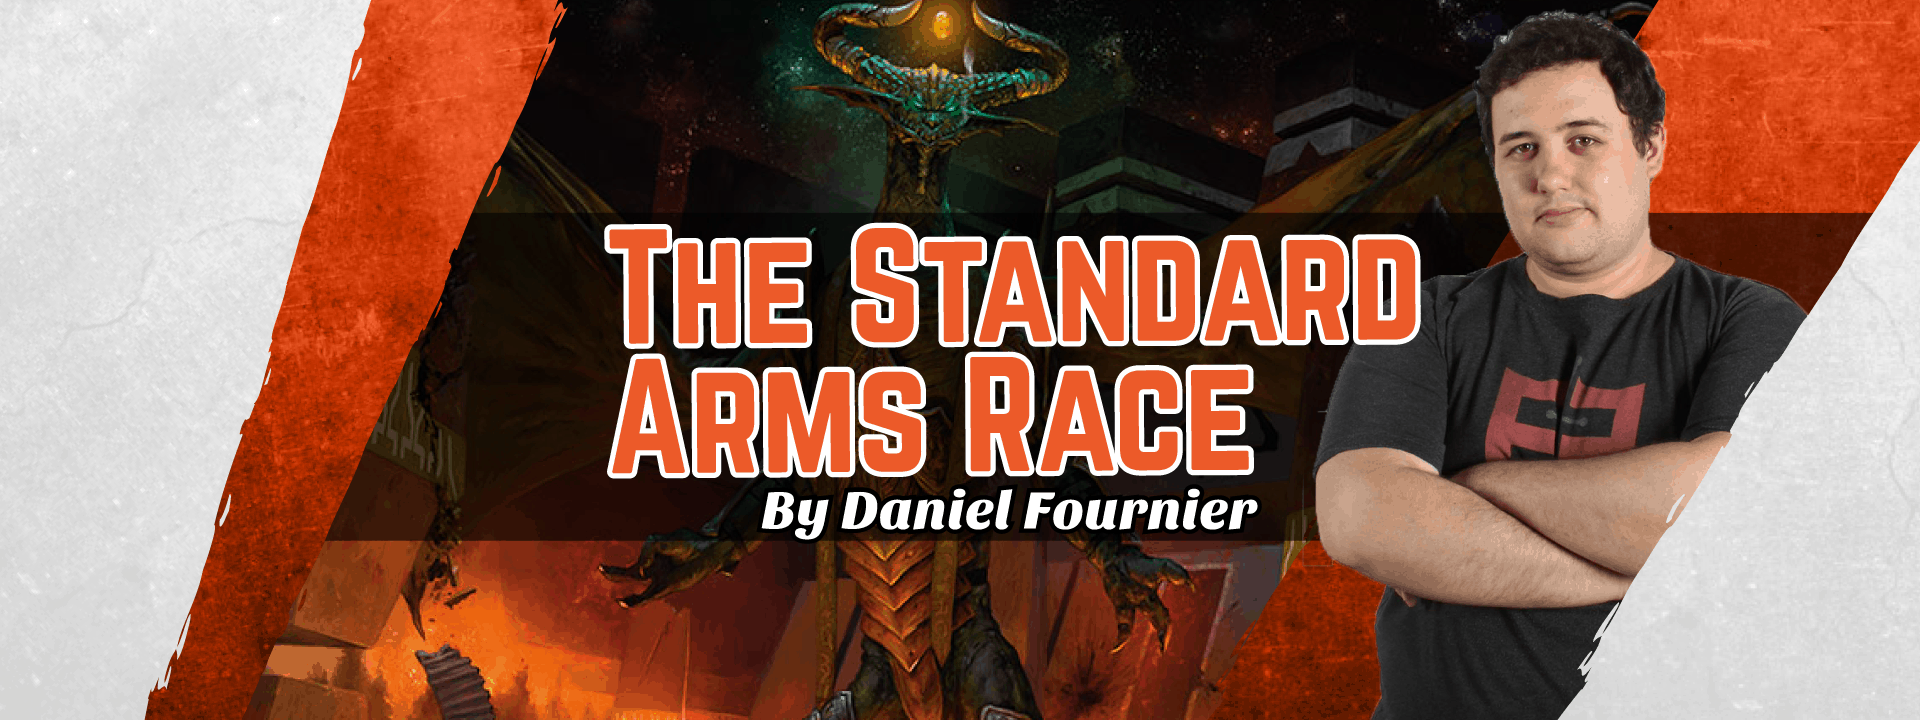 The Standard arms race